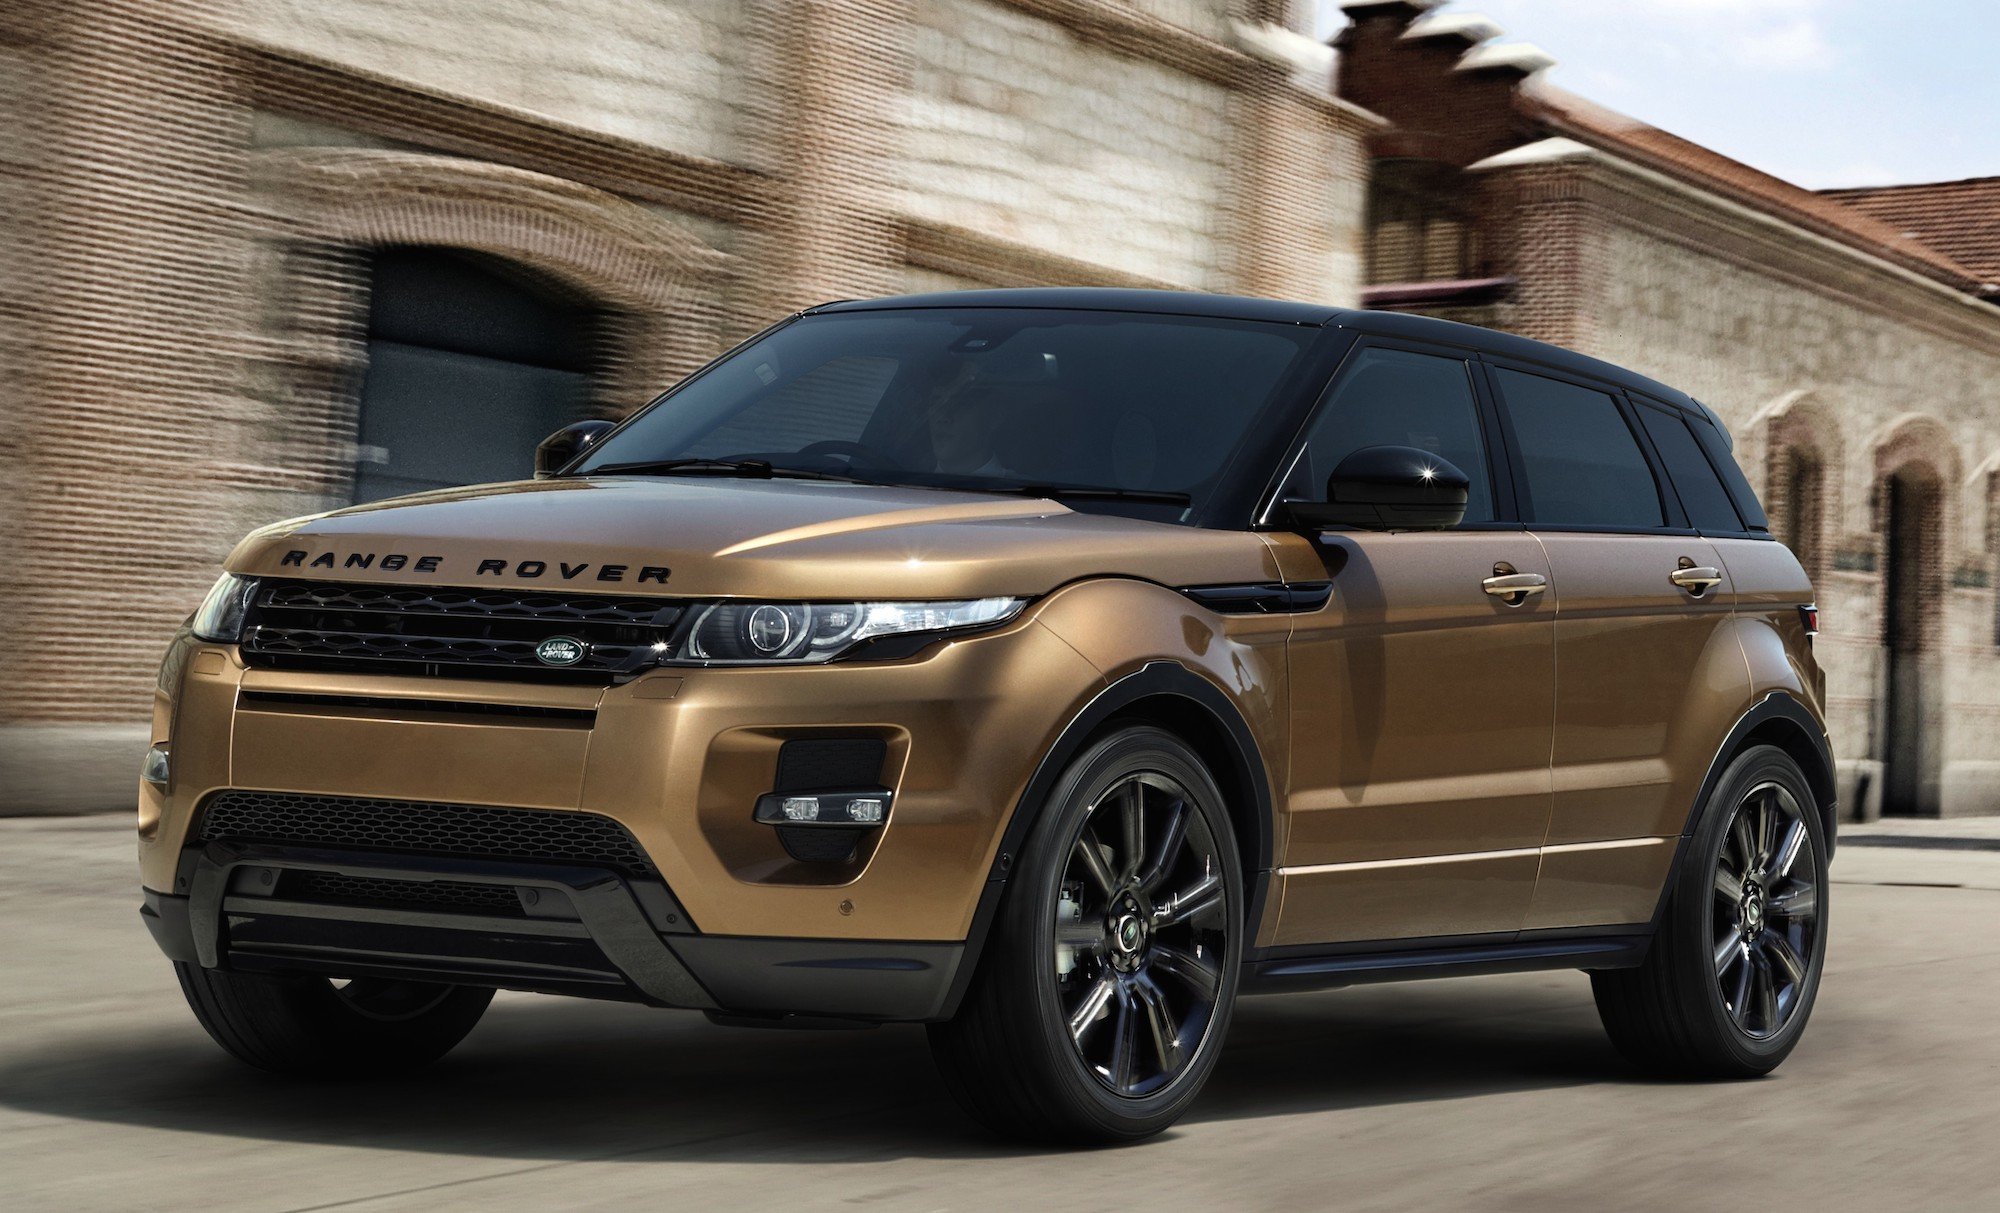 check out the 2014 range rover evoque at land rover. Black Bedroom Furniture Sets. Home Design Ideas